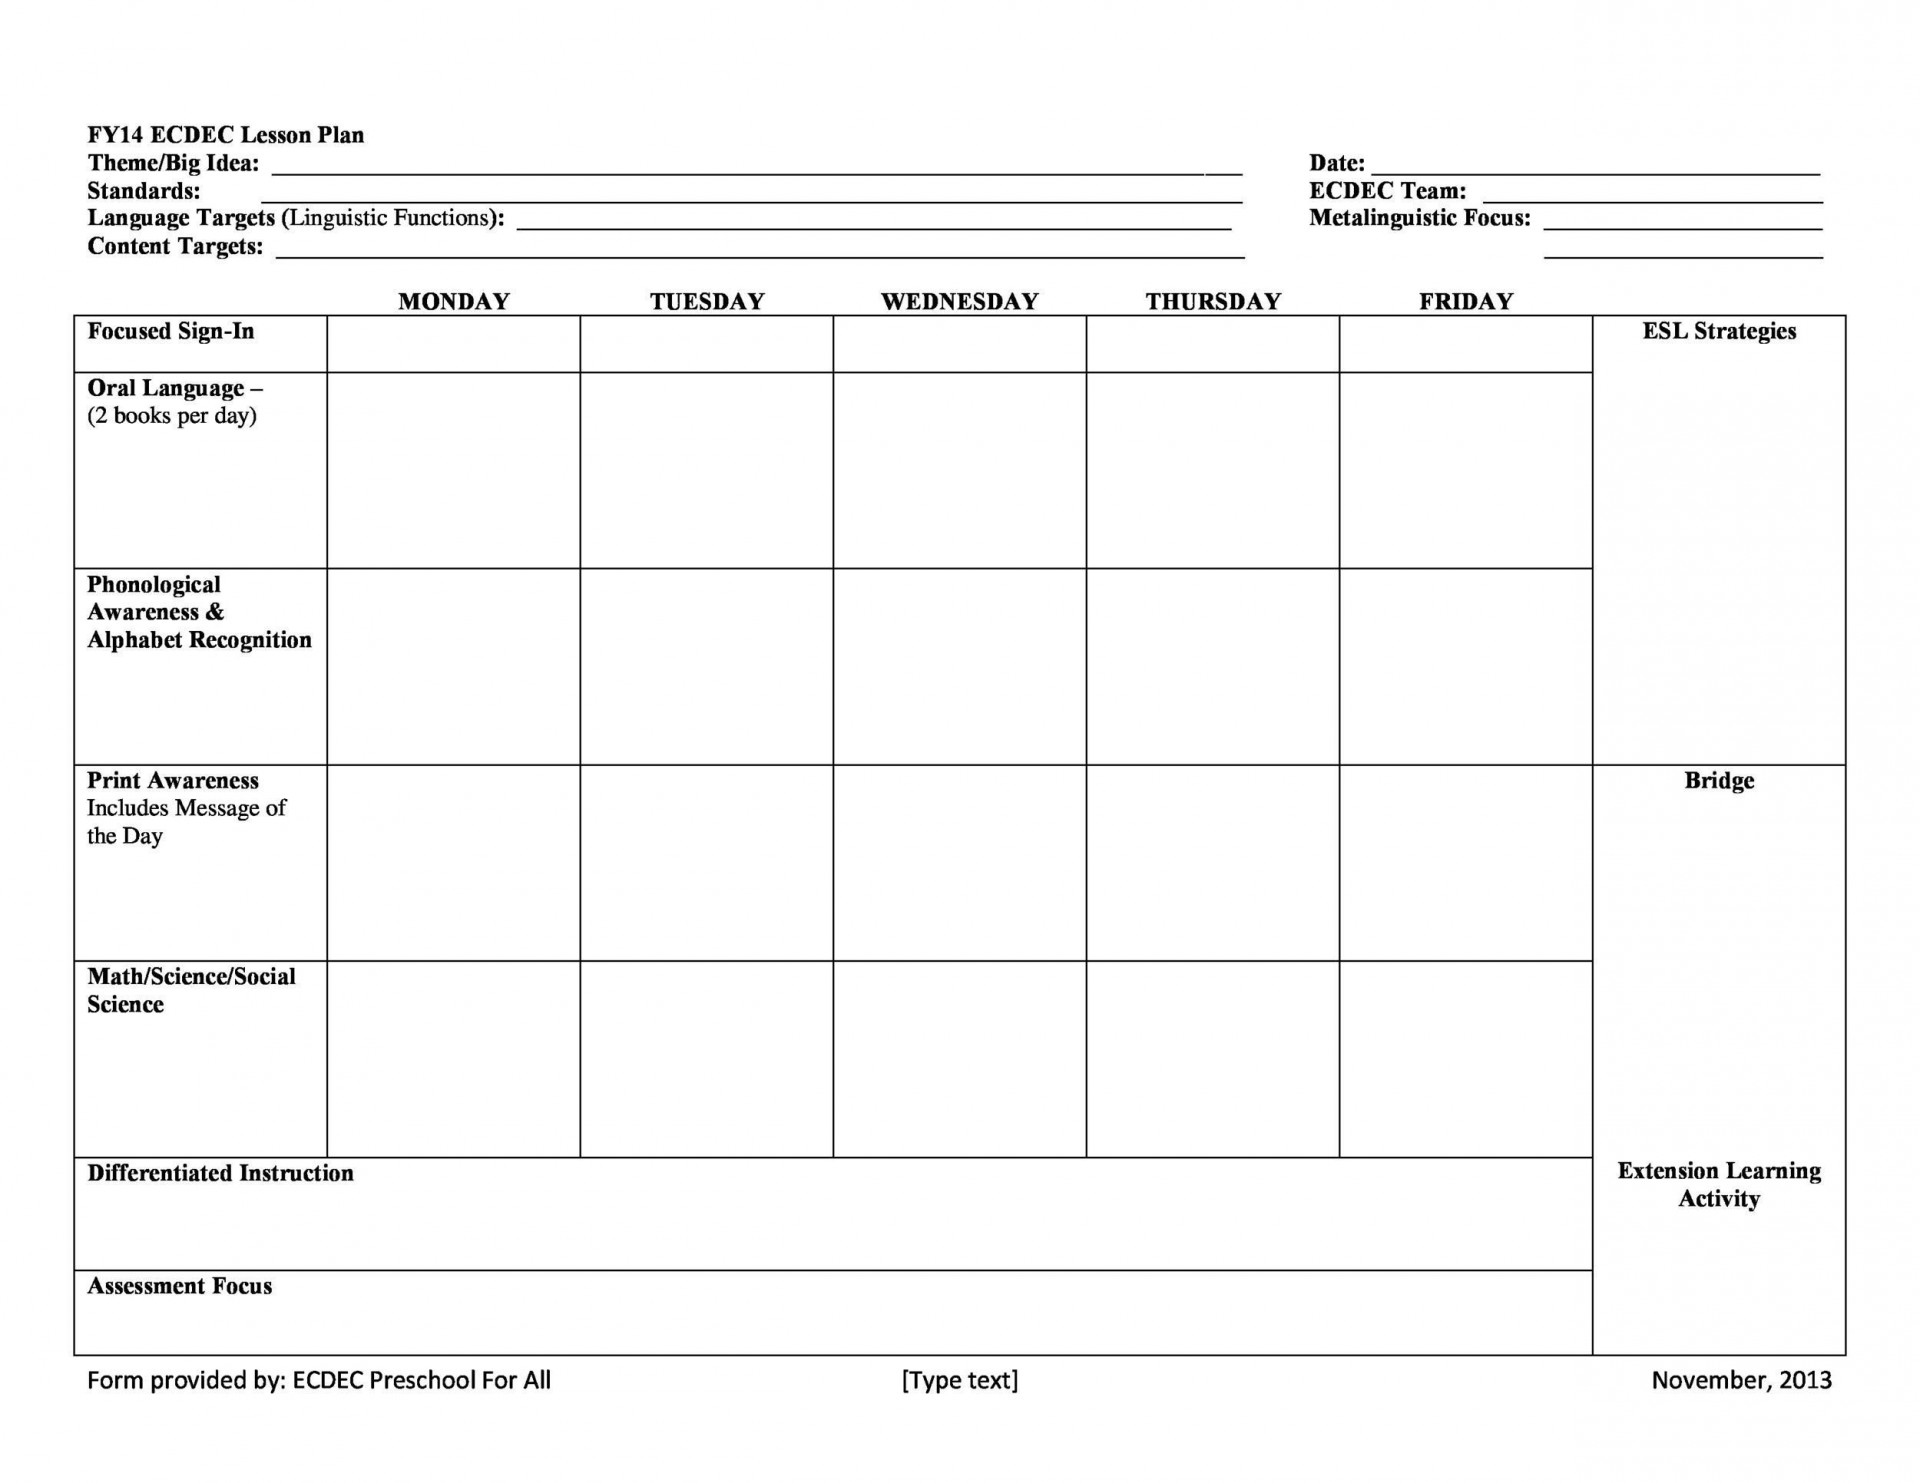 006 Dreaded Sample Pre K Lesson Plan High Definition  Plans Toddler Template Ga Pre-k1920